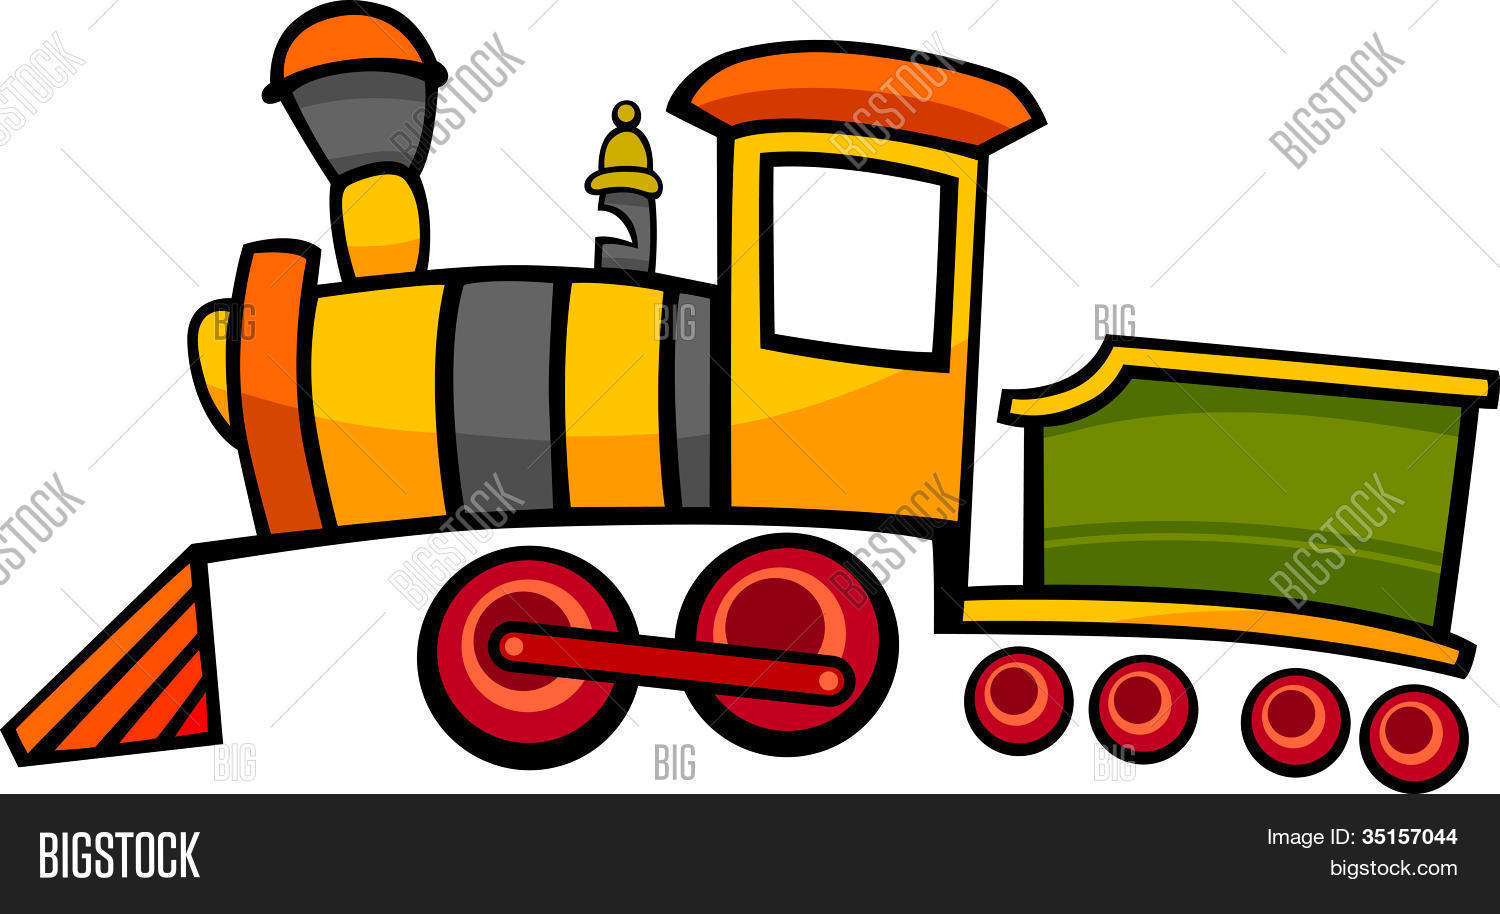 1500x914 Beautiful Cartoon Train Pictures 10 Maxresdefault Coloring Pages